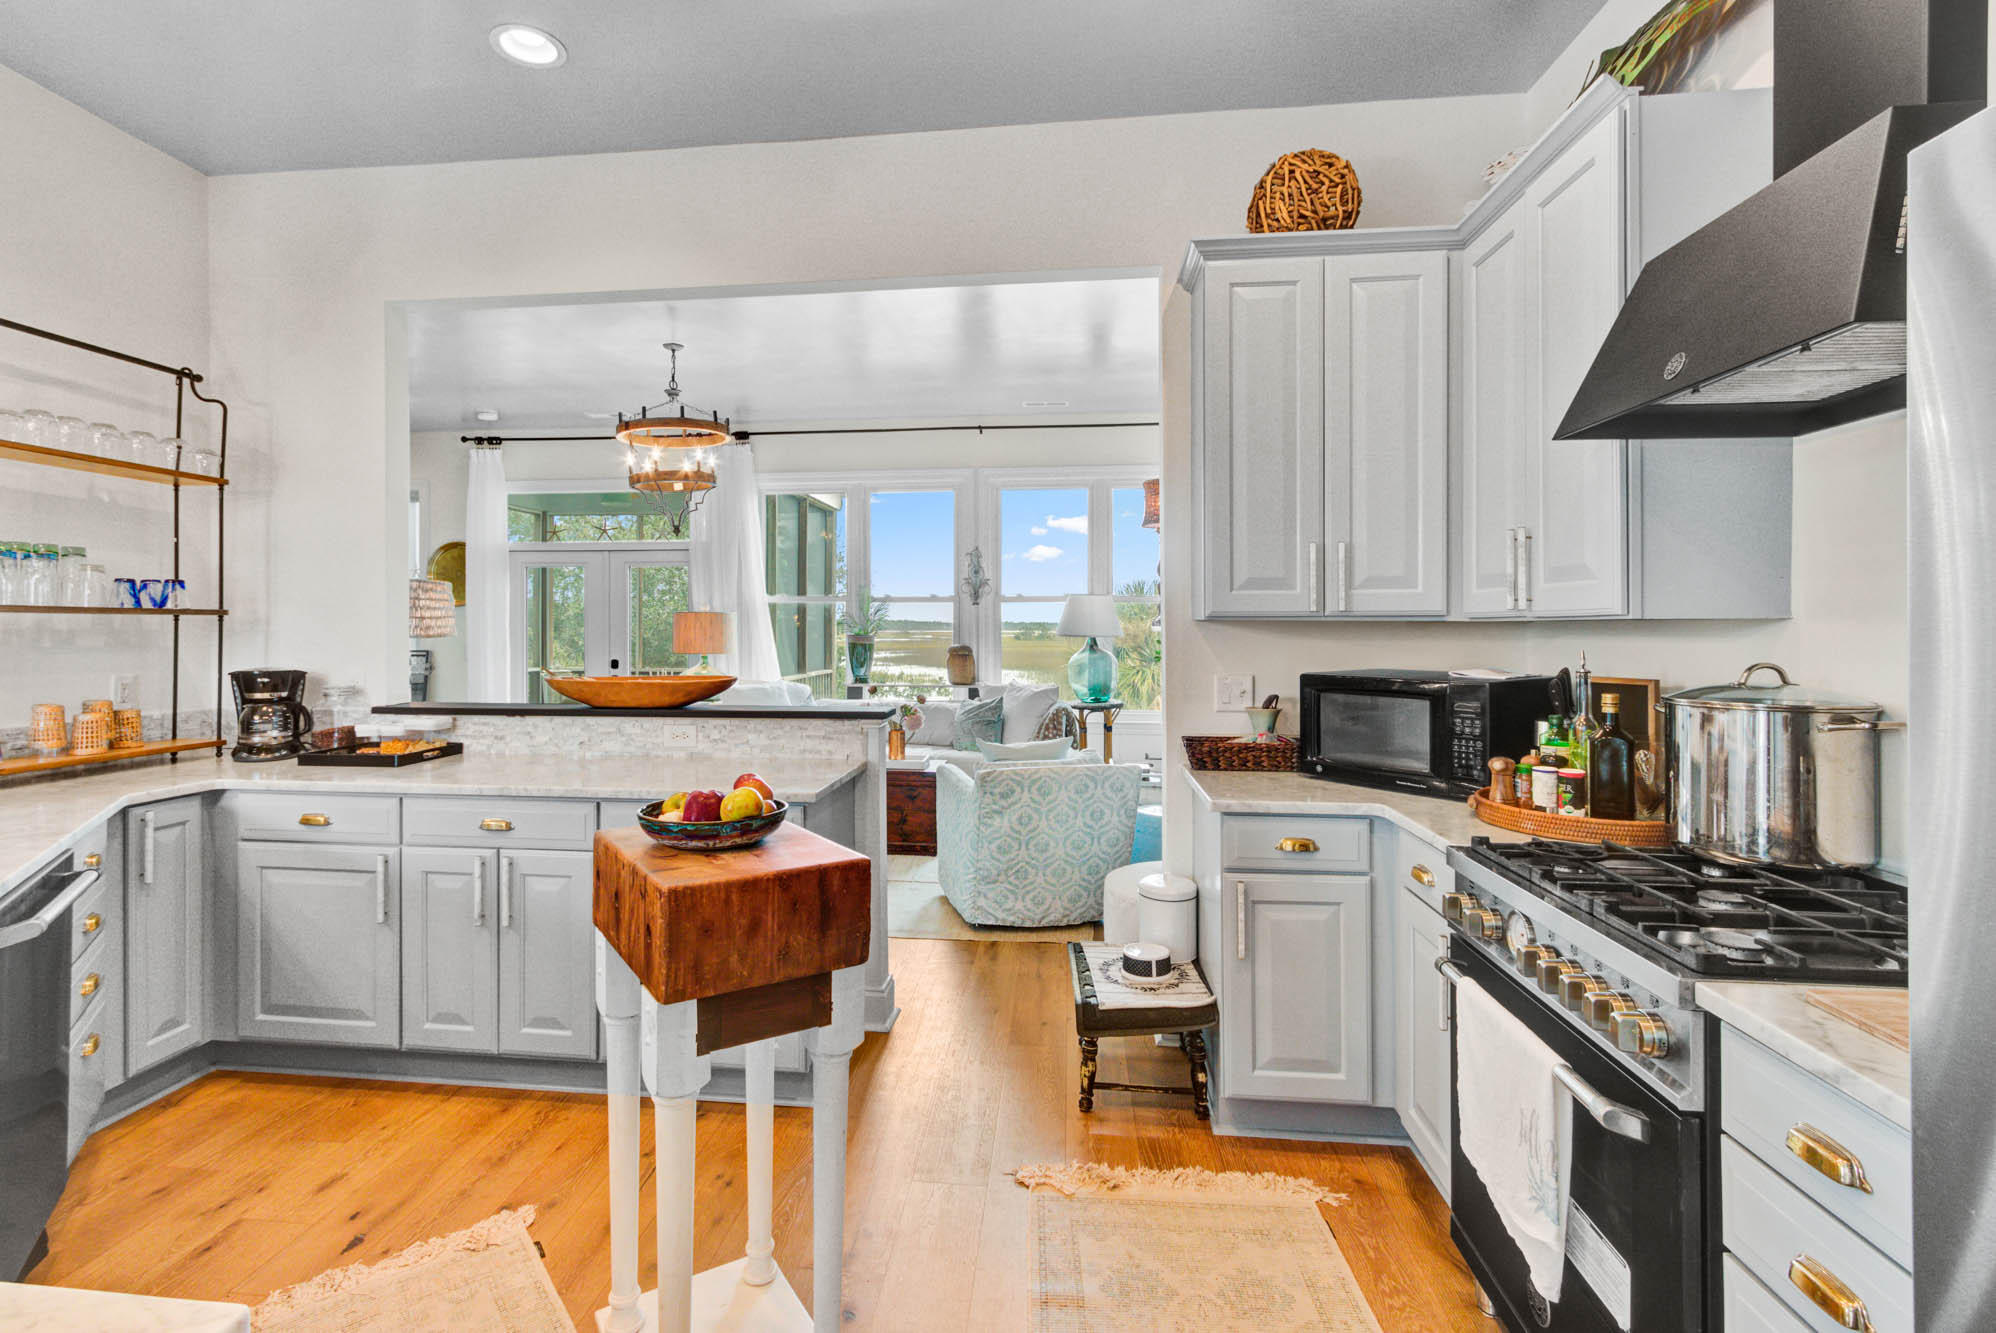 Folly Creek Place Homes For Sale - 2240 Folly, Folly Beach, SC - 28